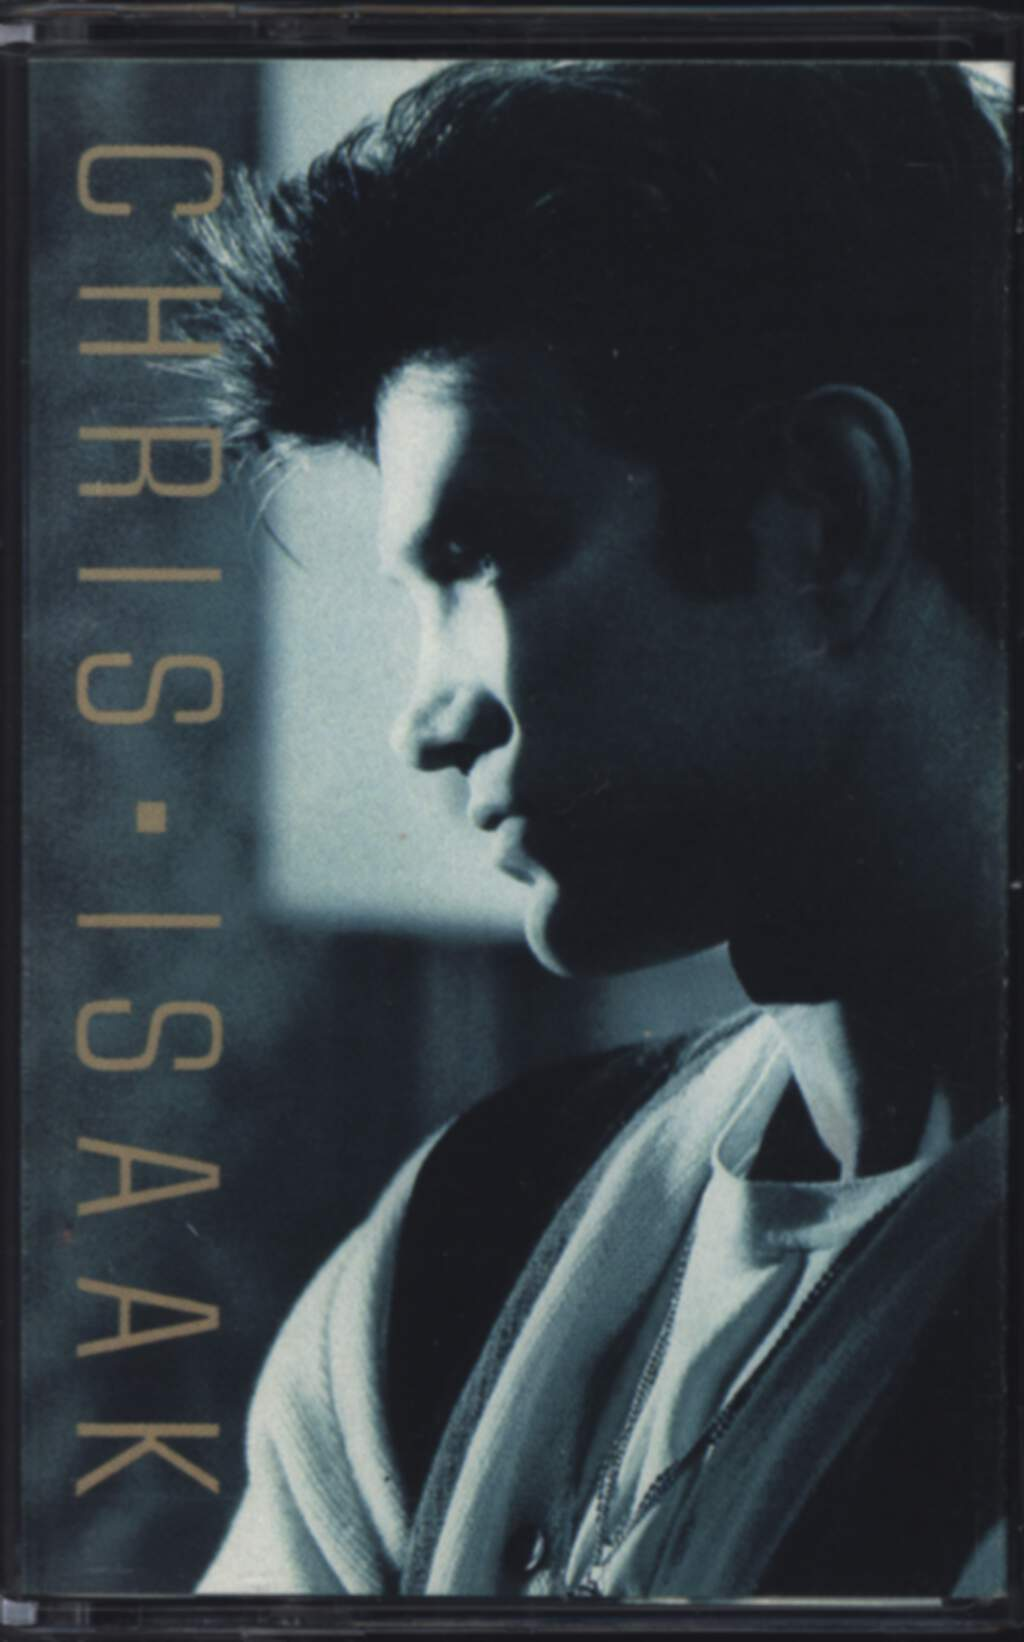 Chris Isaak: Chris Isaak, Compact Cassette